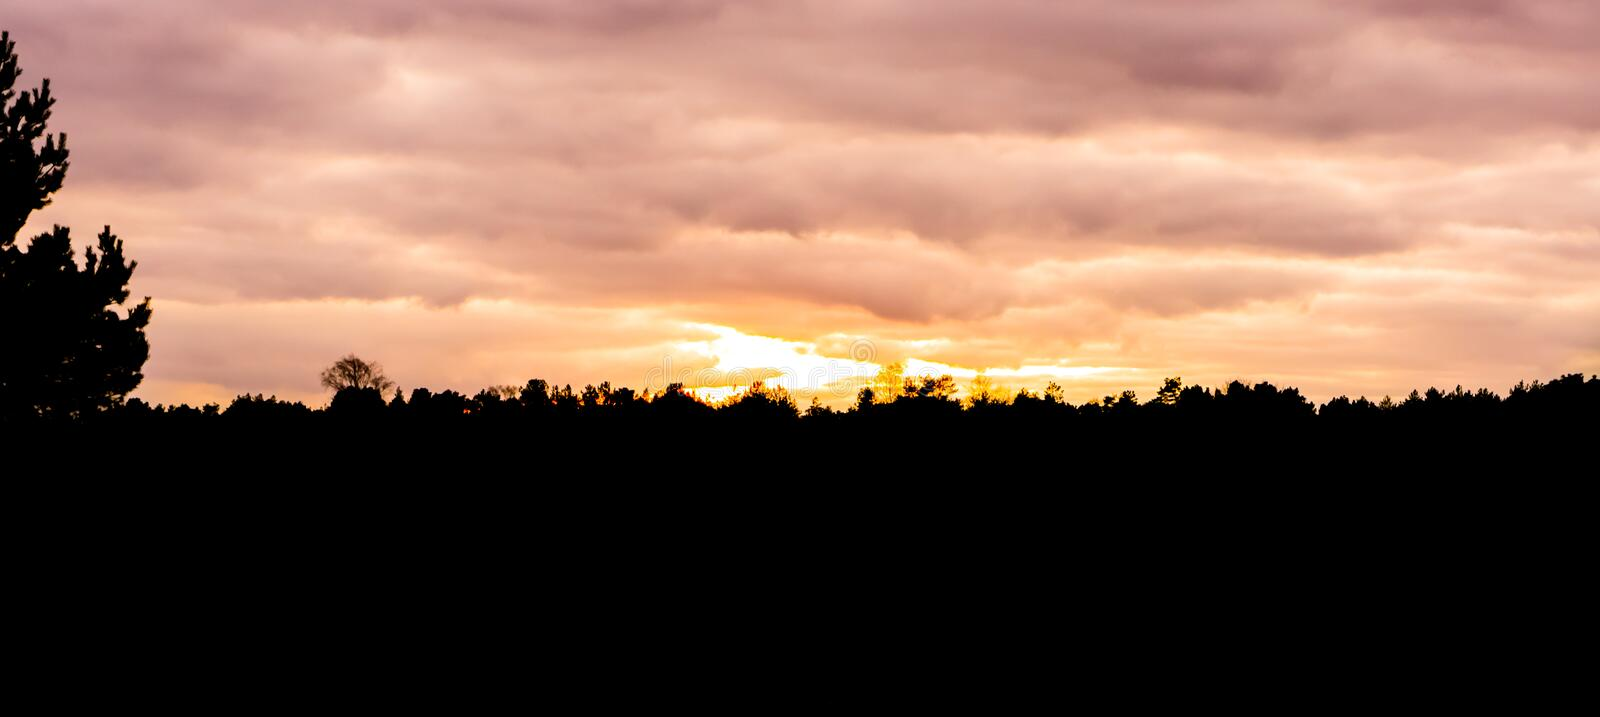 Silhouette of a moorland landscape in the forest at sunset, sundown giving orange and pink colors in the sky and clouds royalty free stock photos